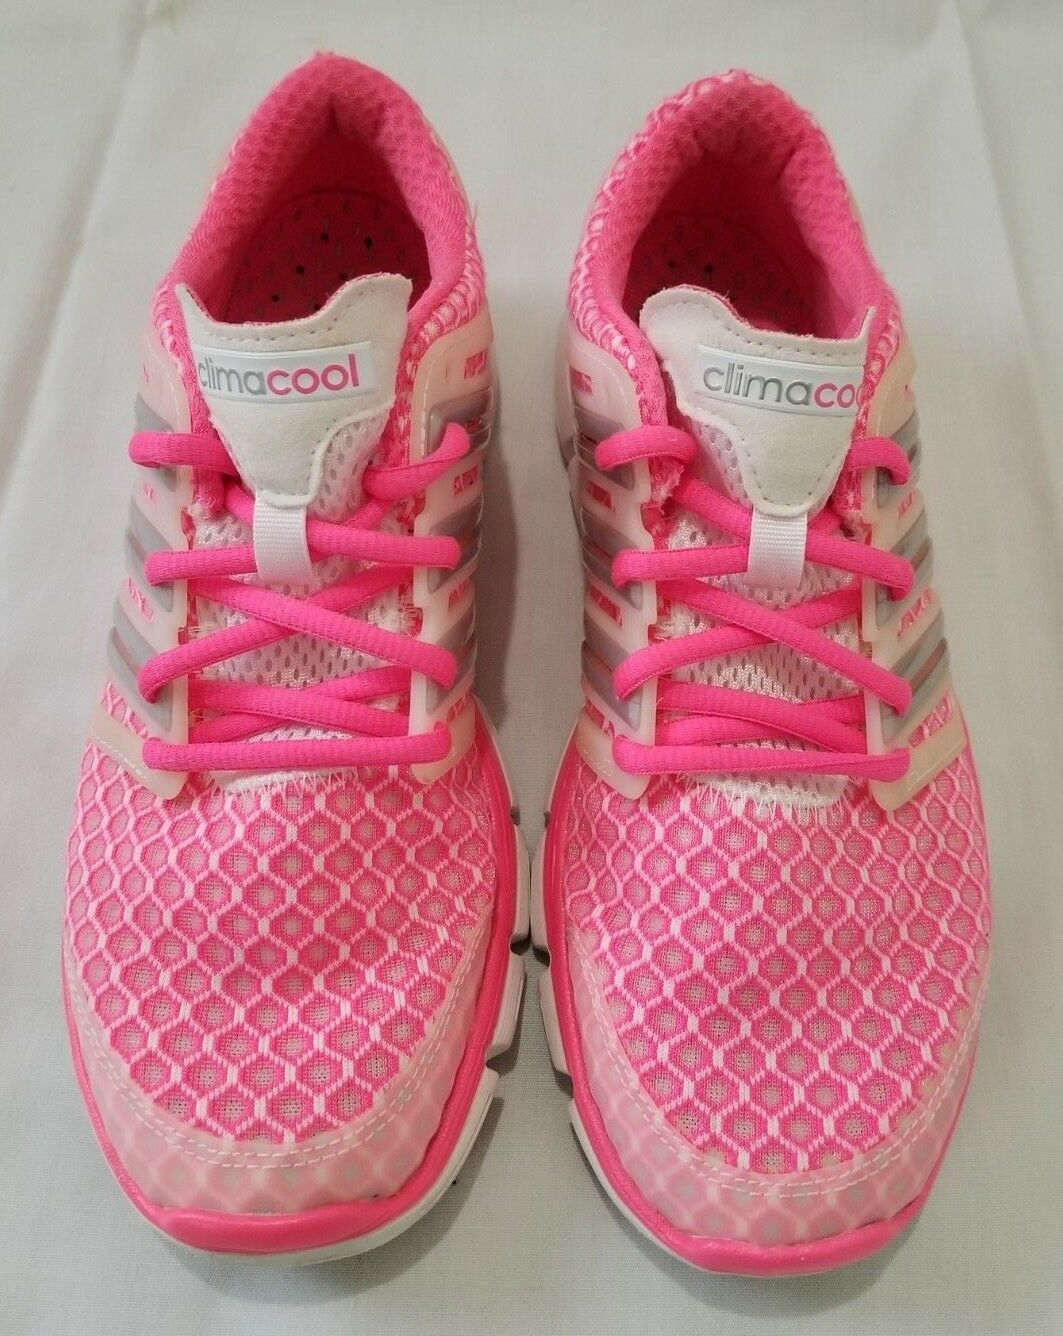 Details about Adidas CC Ride Climacool Running Shoes GrayPink G15761 Women Size 7 M